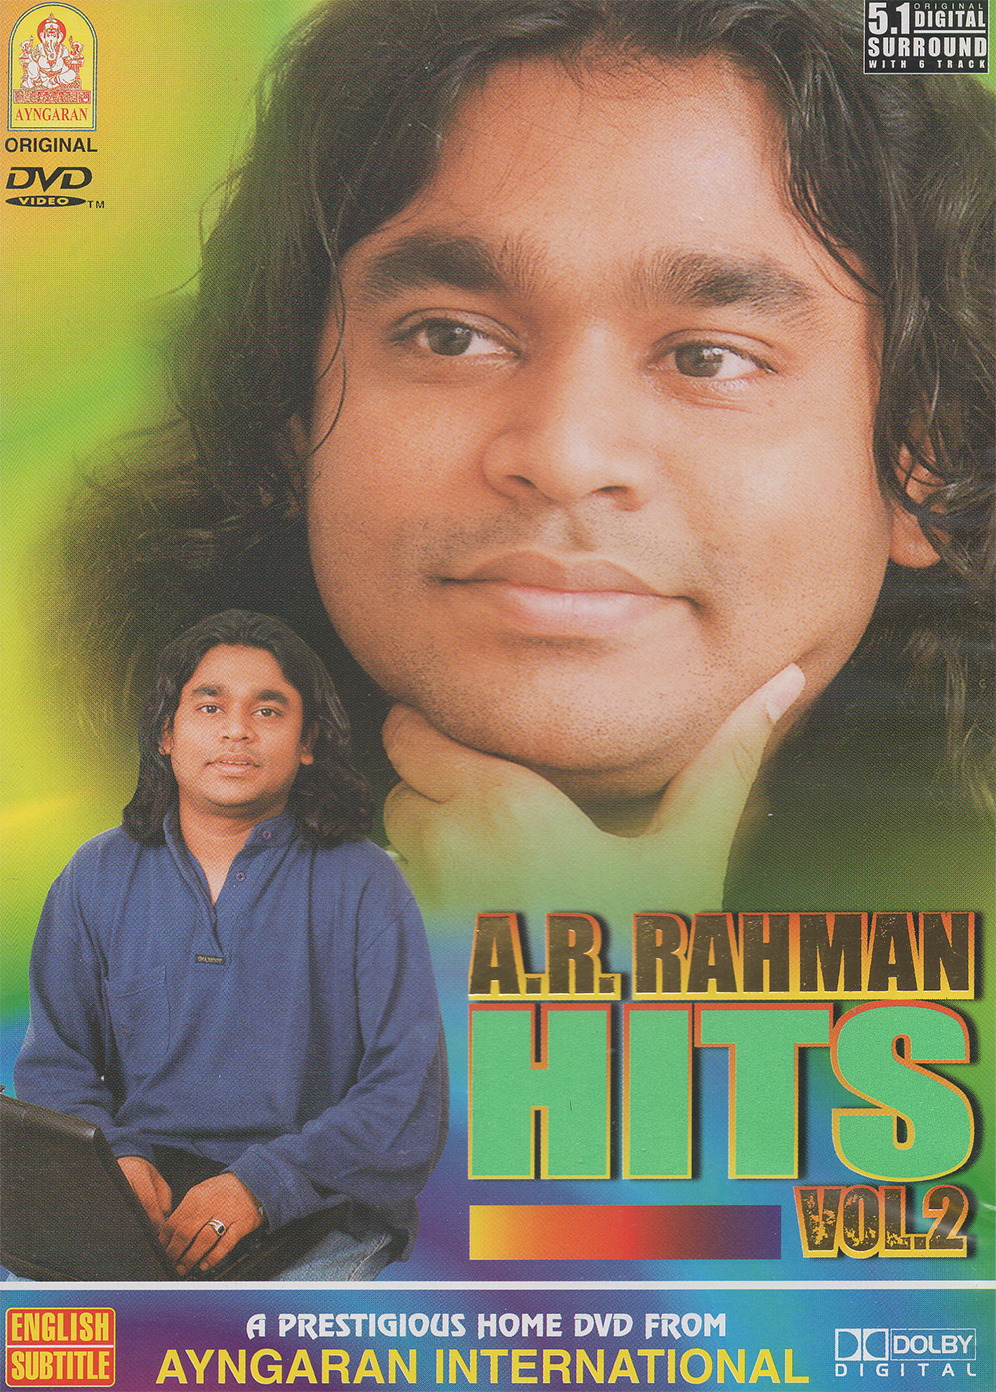 A.R.Rahman Hits Vol 2